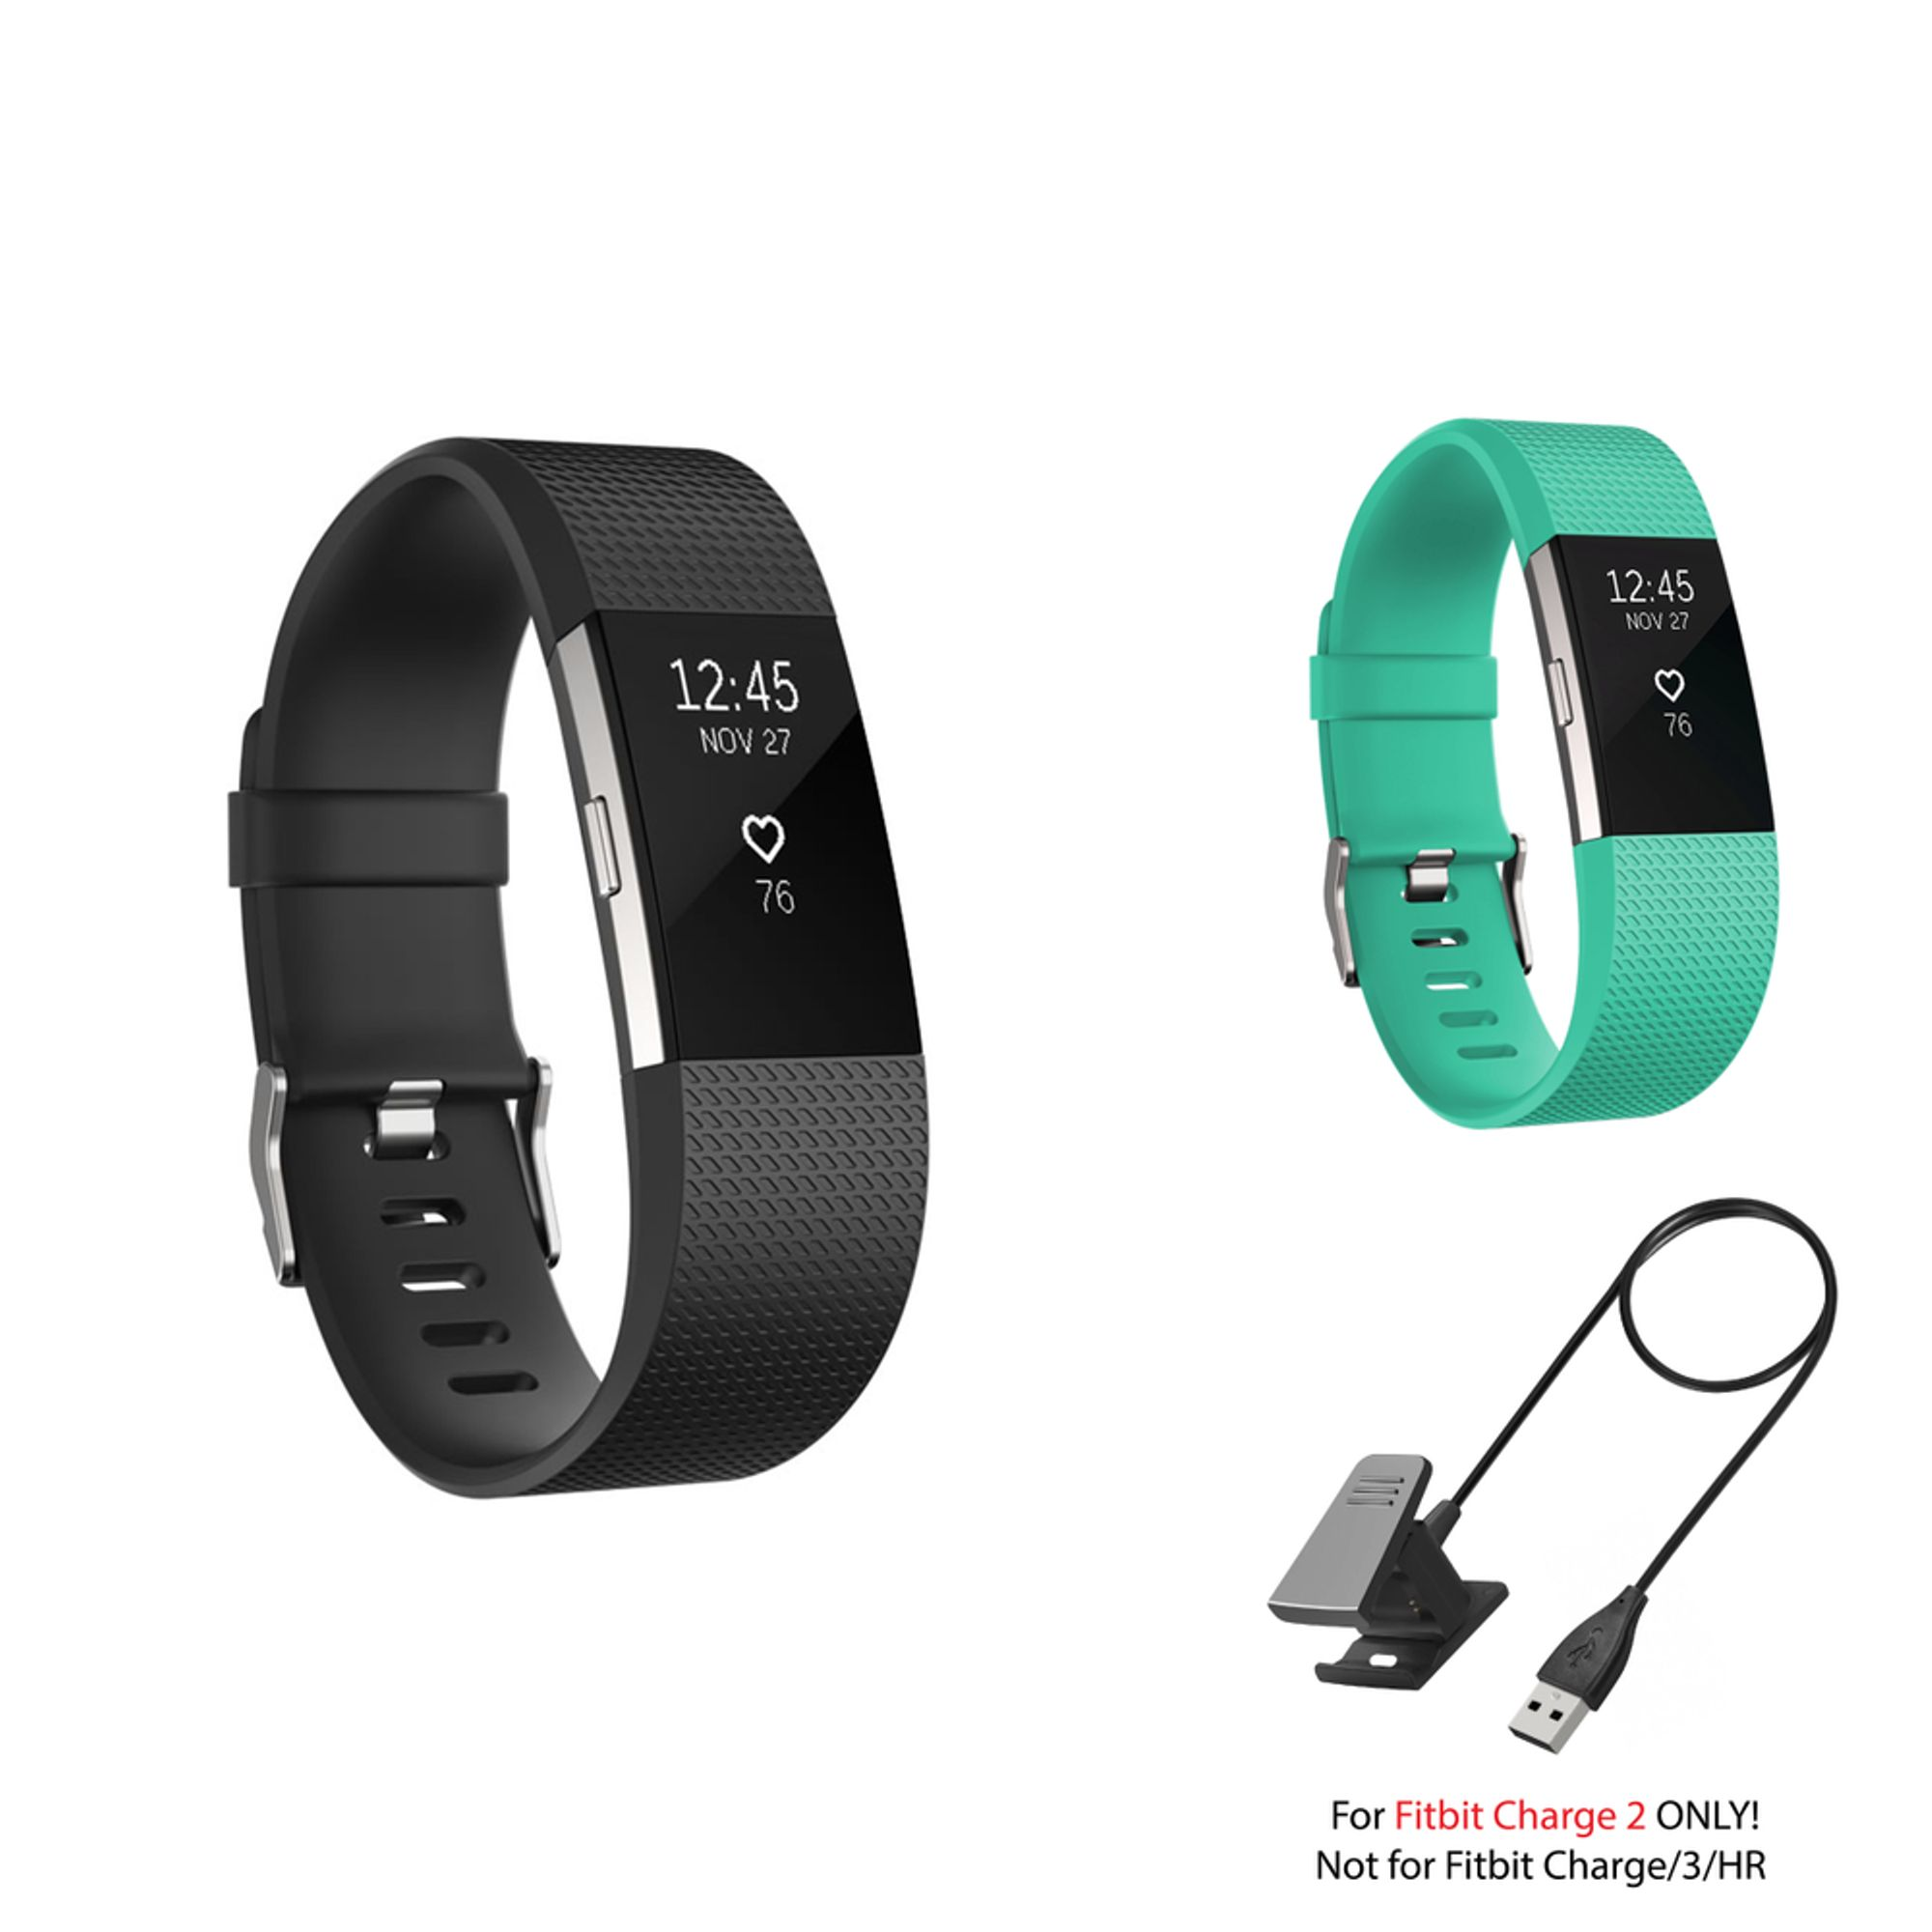 Fitbit Charge 2 Bands and Fitbit Charge 2 Charger by Zodaca 2 pack (Black & Mint Green) Replacement Bands Rubber Wristband Fashion Sport Strap with Buckle and USB Charging Cable for Fitbit Charge 2